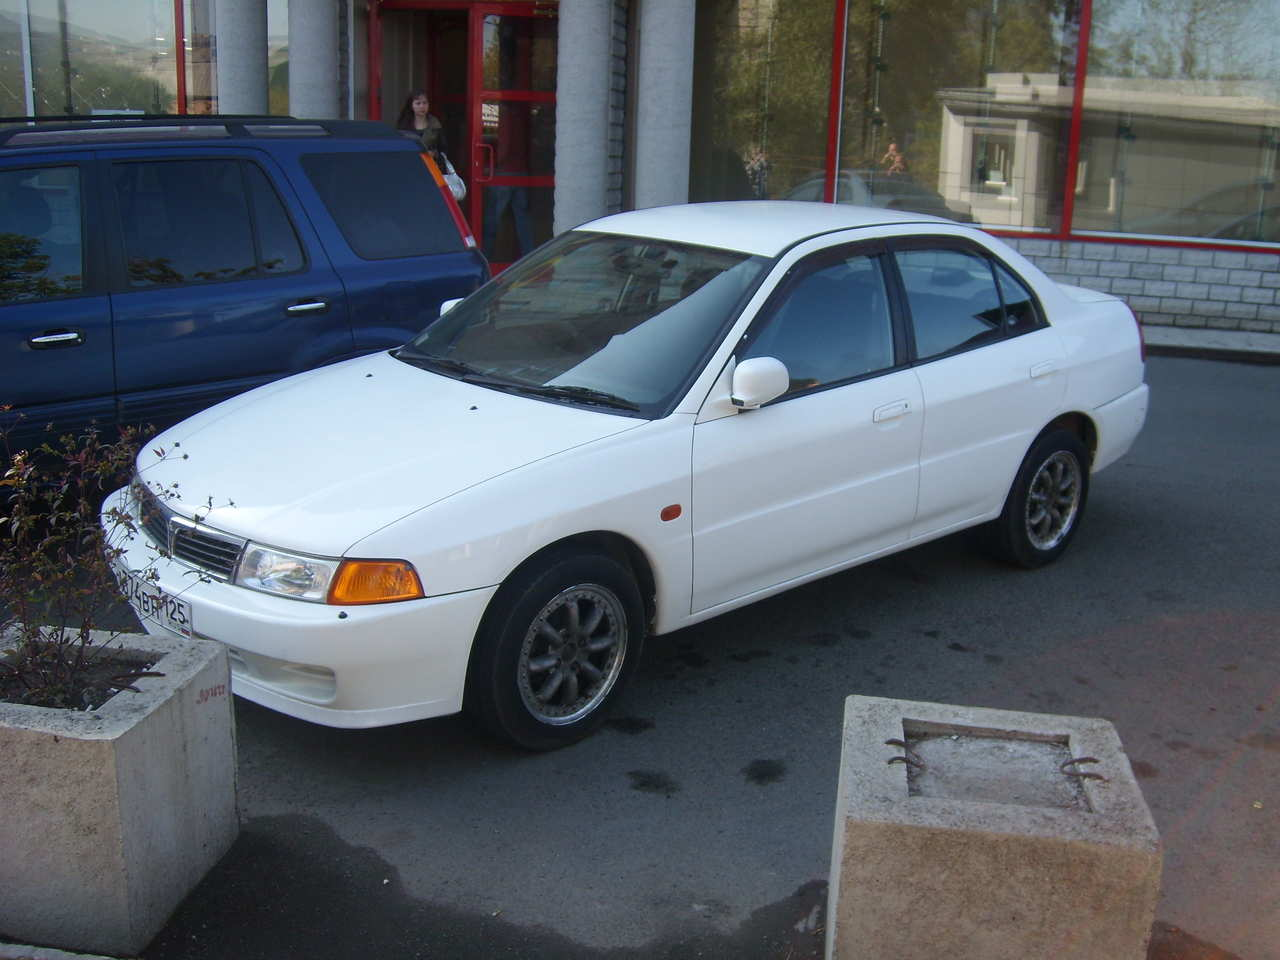 1999 Mitsubishi Lancer Pictures, 1.8l., Gasoline, FF, Automatic For Sale